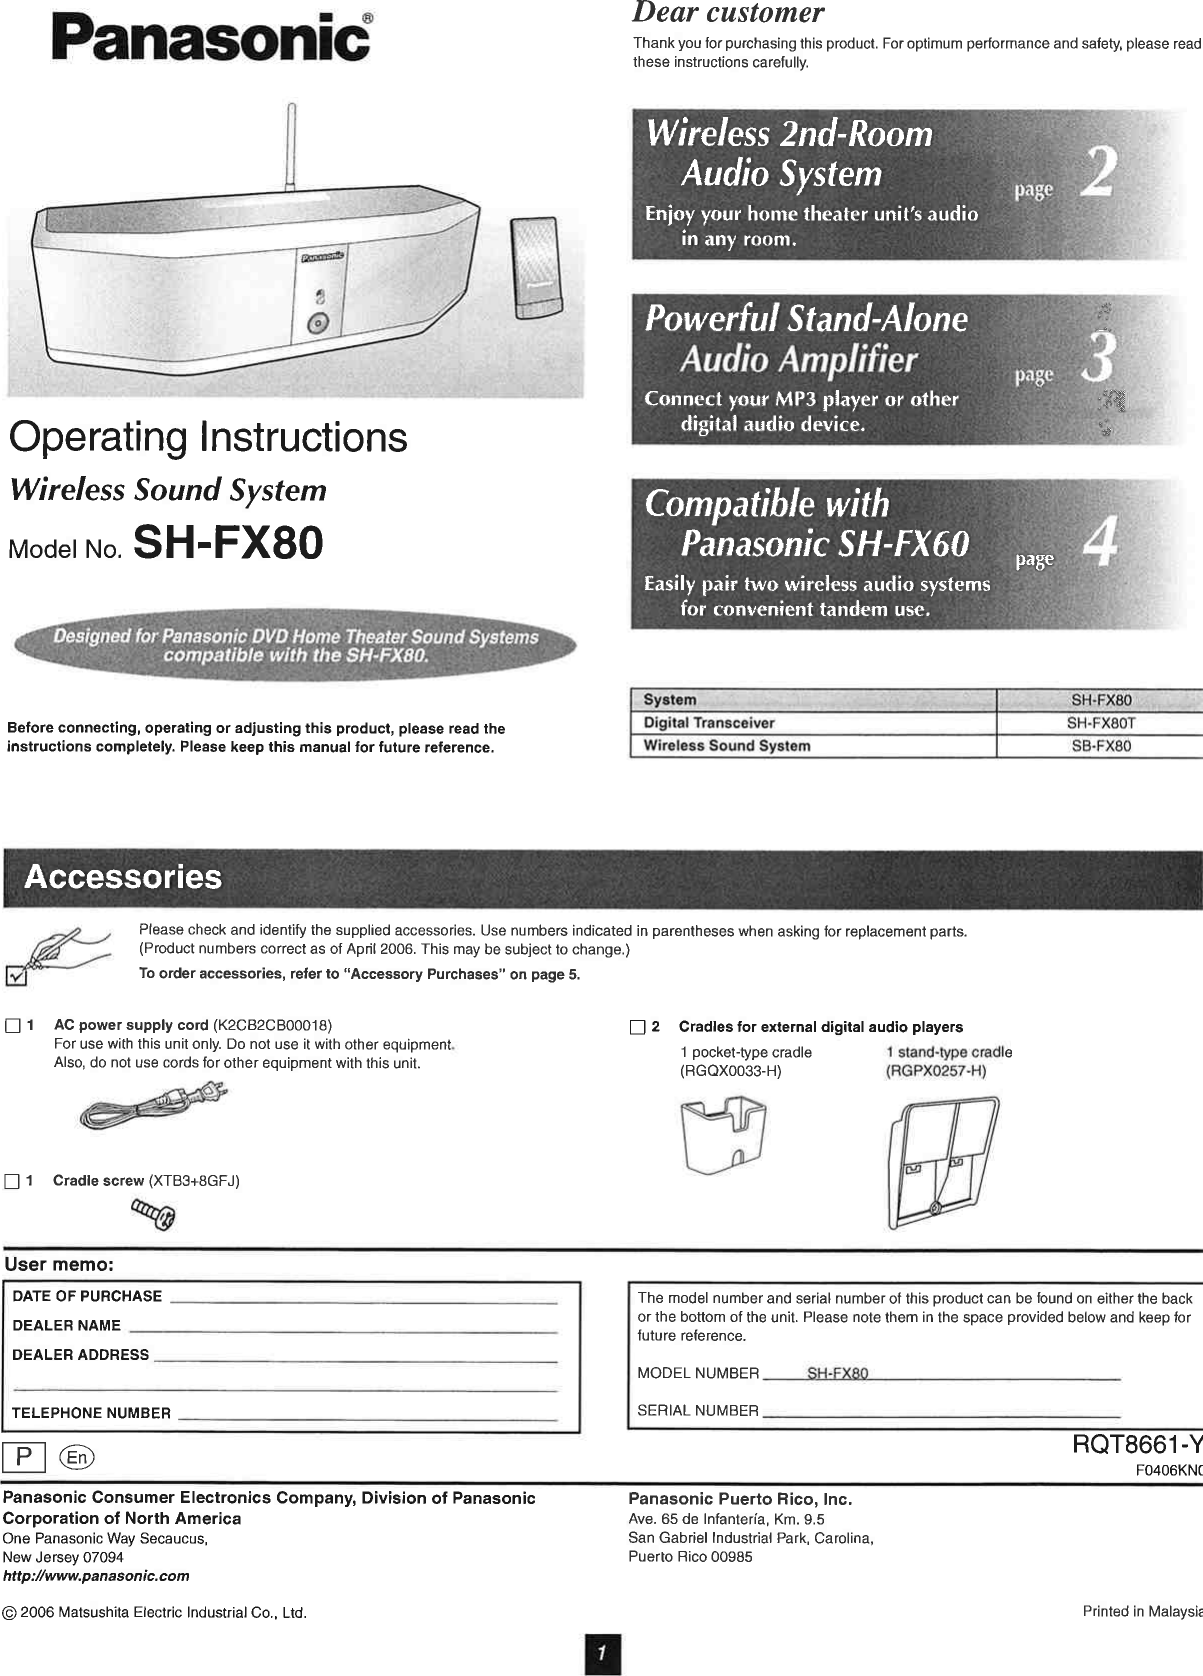 Panasonic Of North America Sefx80a Wireless Sound System Model Sb Guide Fx80 User Manual Users